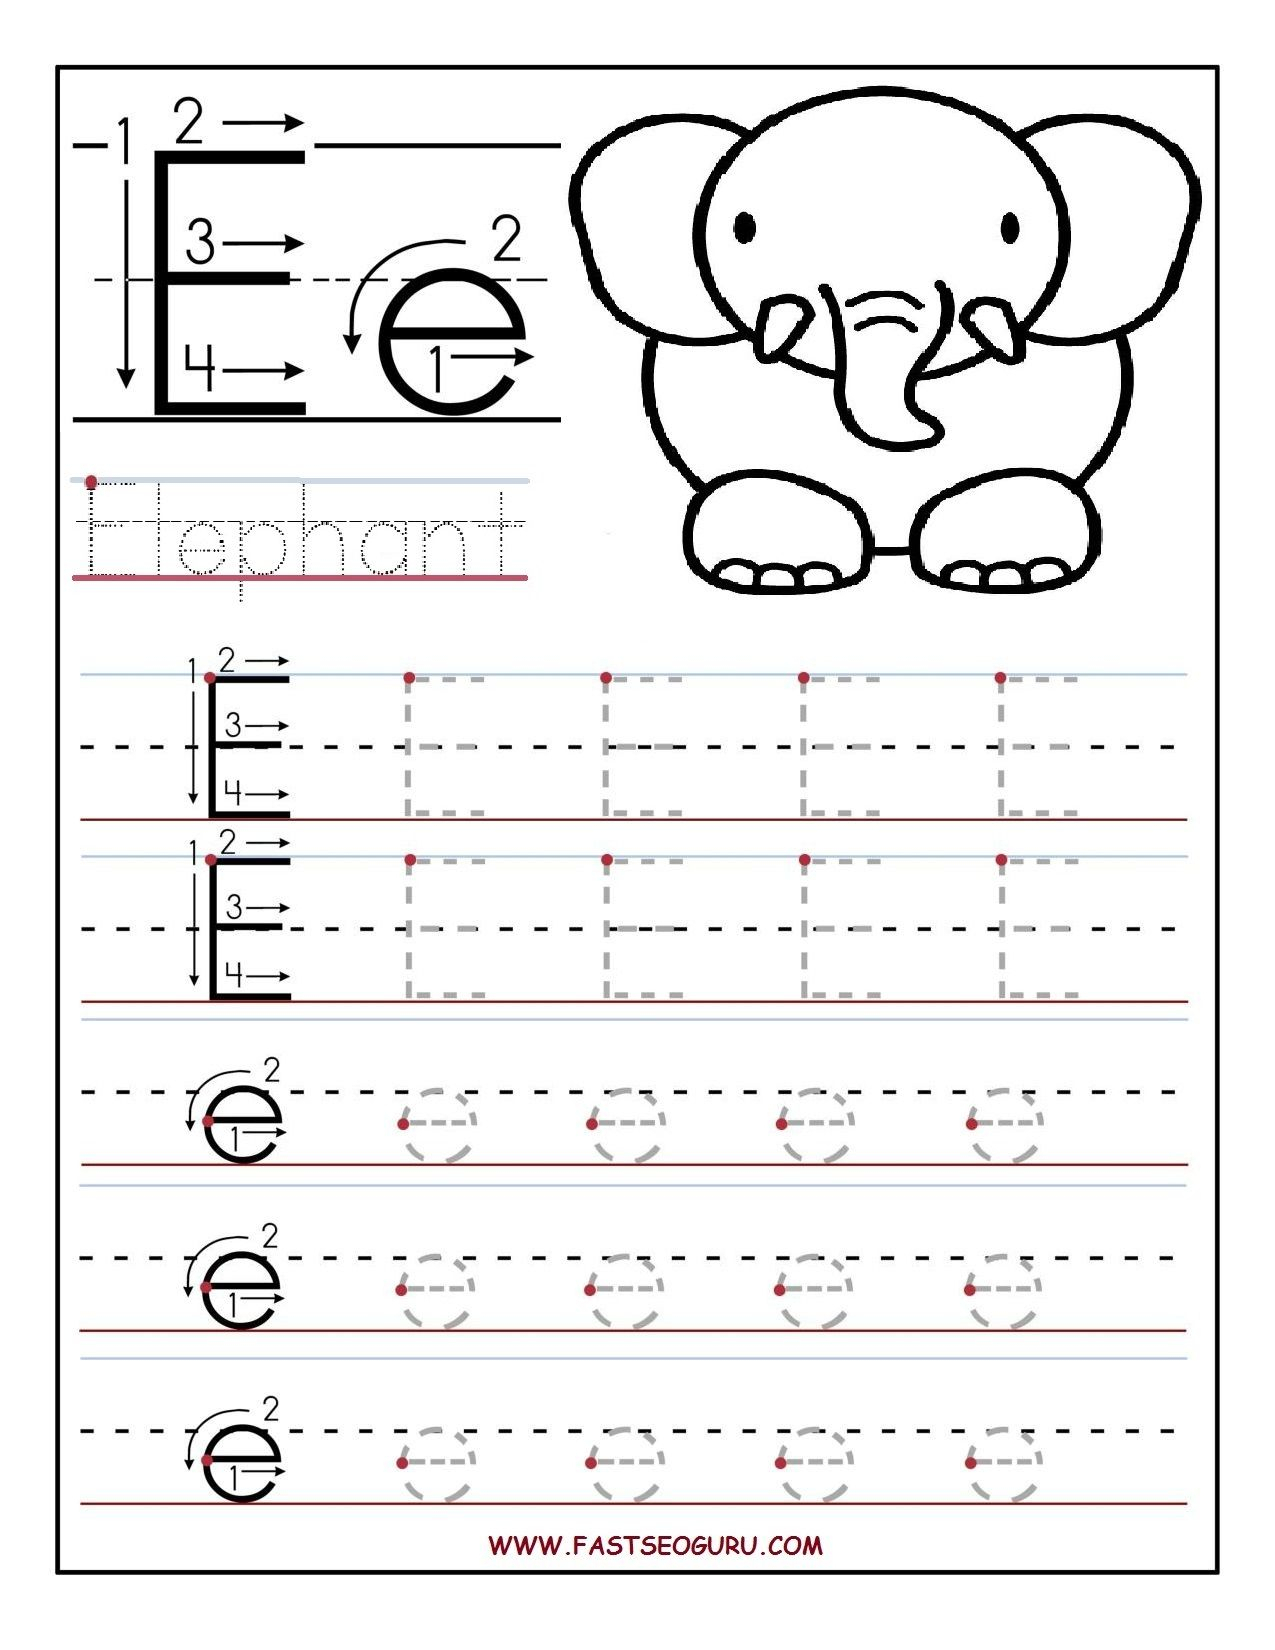 Printable Letter E Tracing Worksheets For Preschool inside Letter E Worksheets For Kindergarten